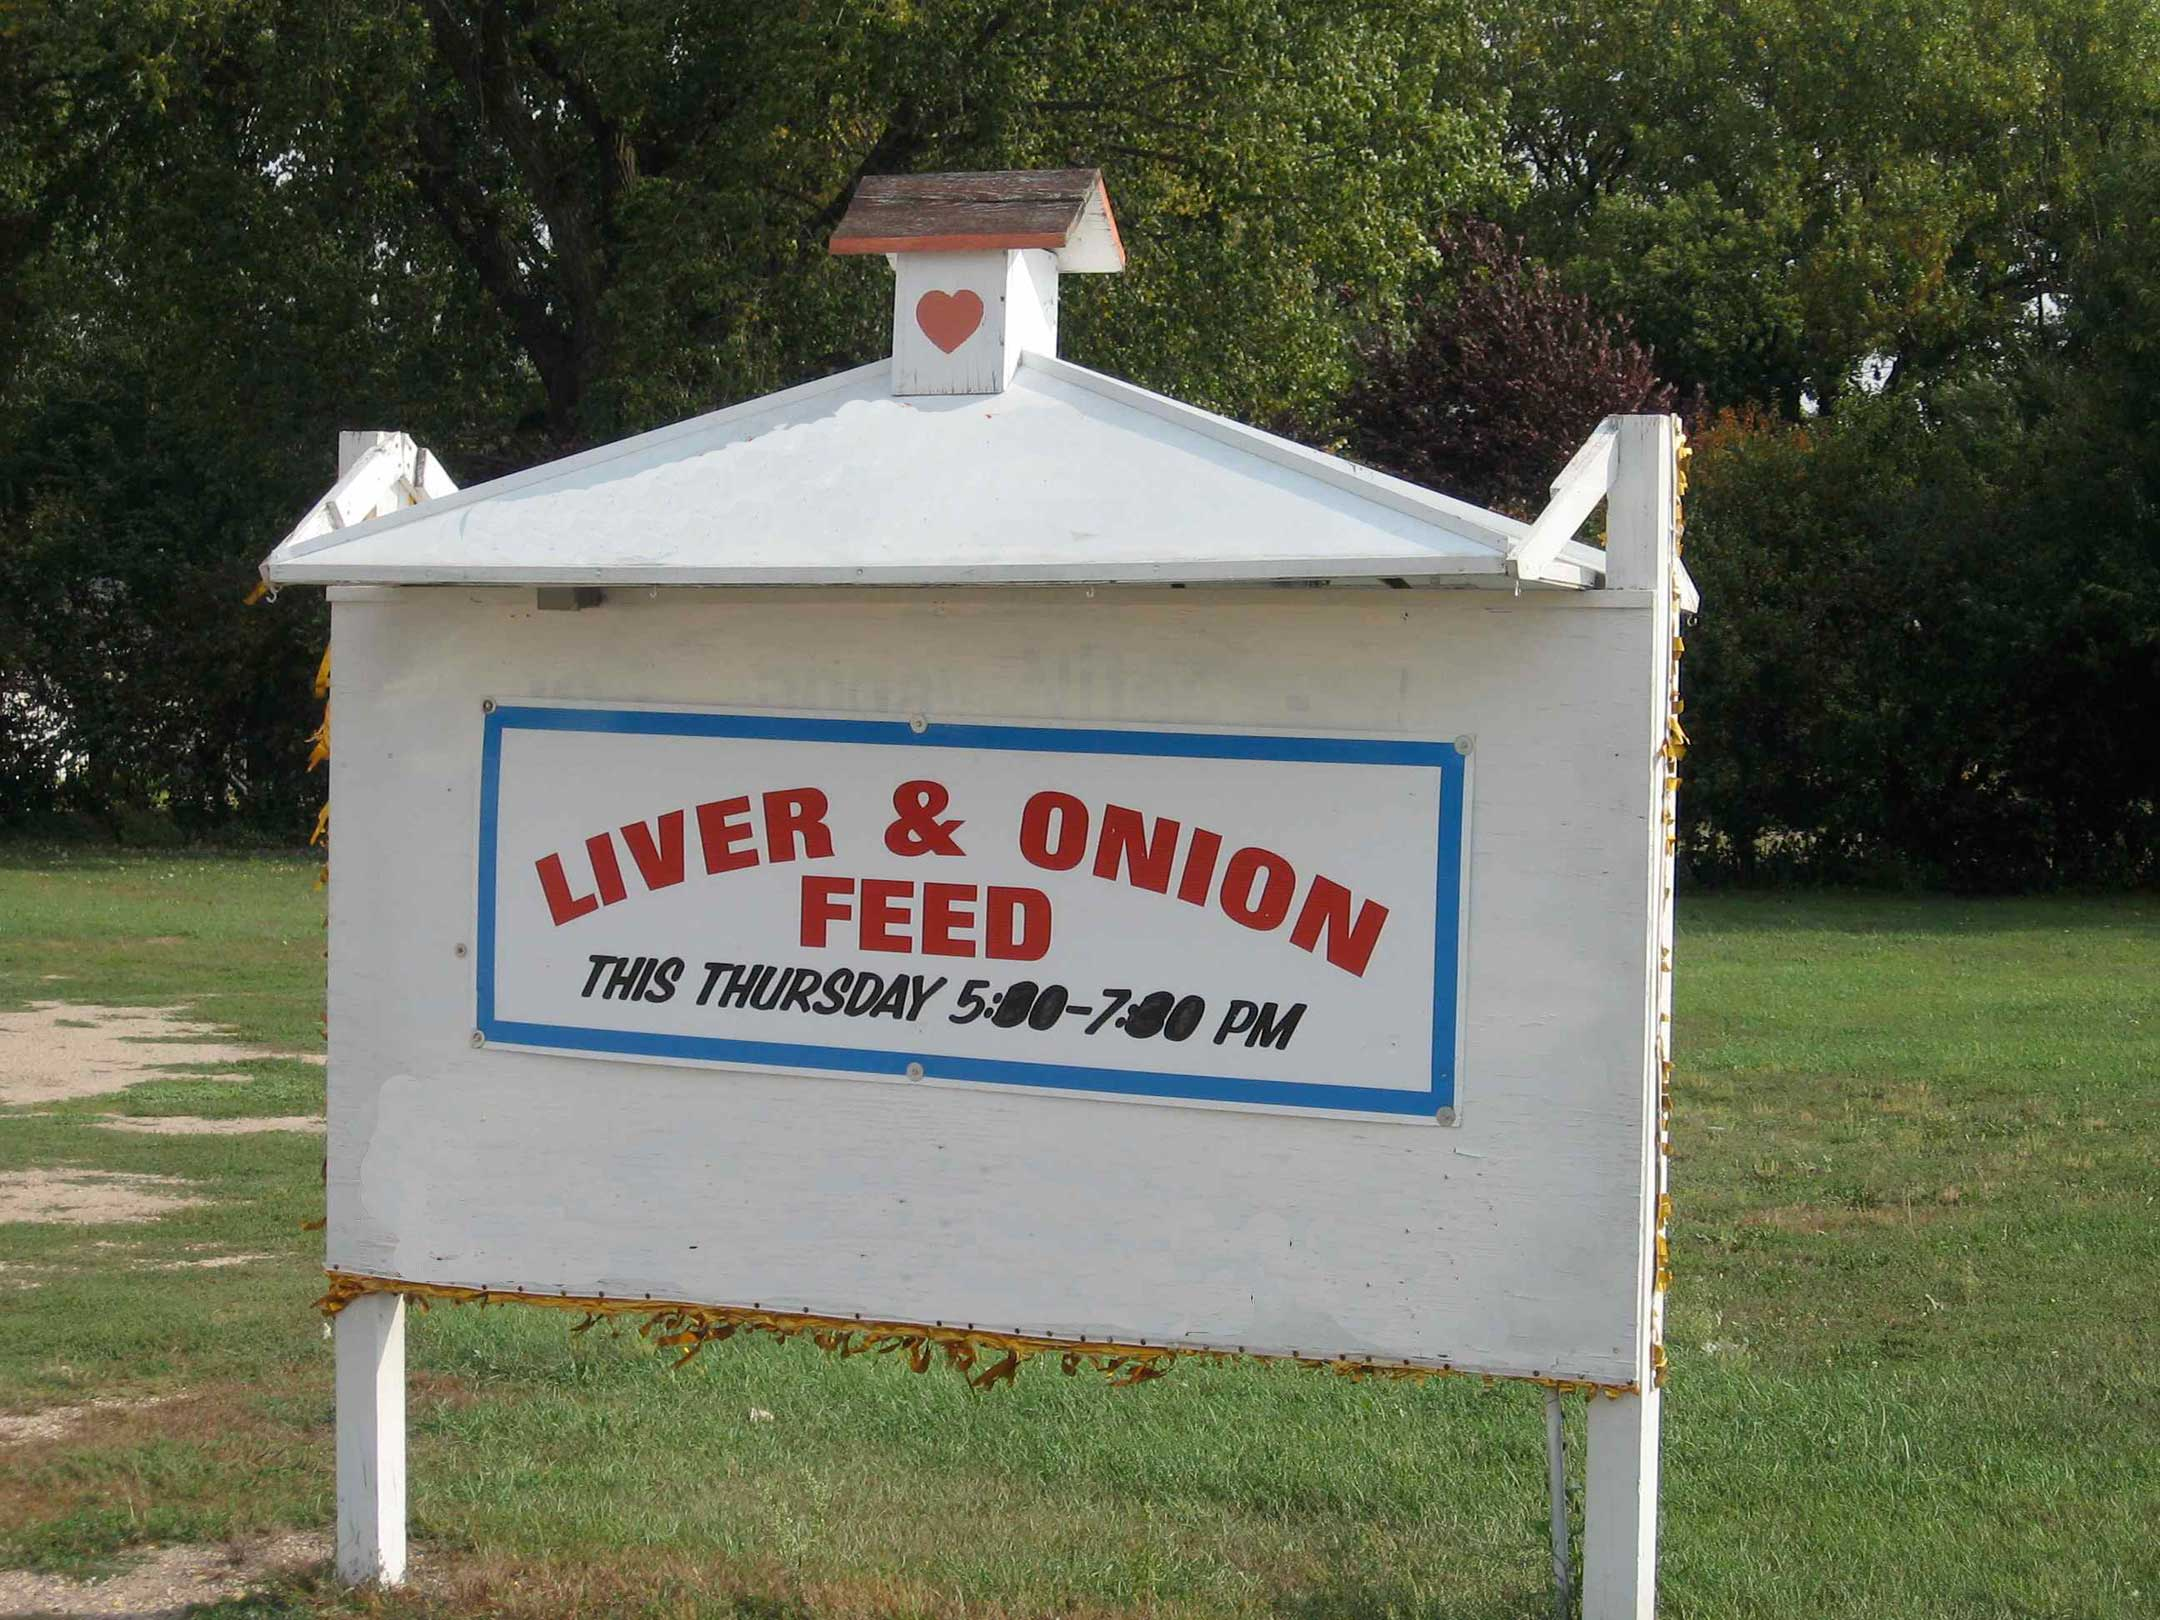 Liver-aND-ONION-FEED